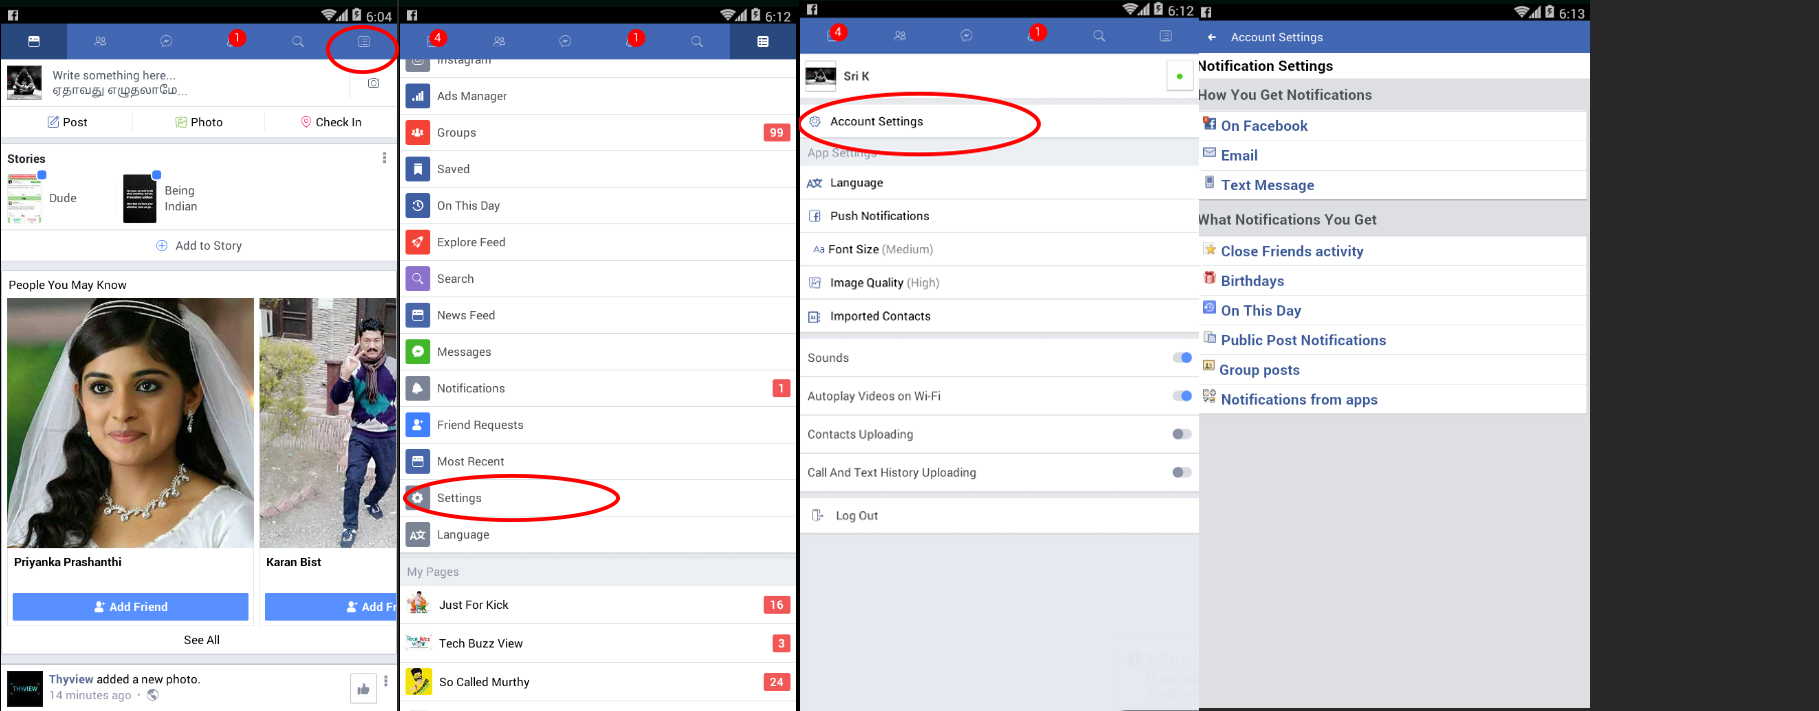 Facebook Notification Settings for Mobile